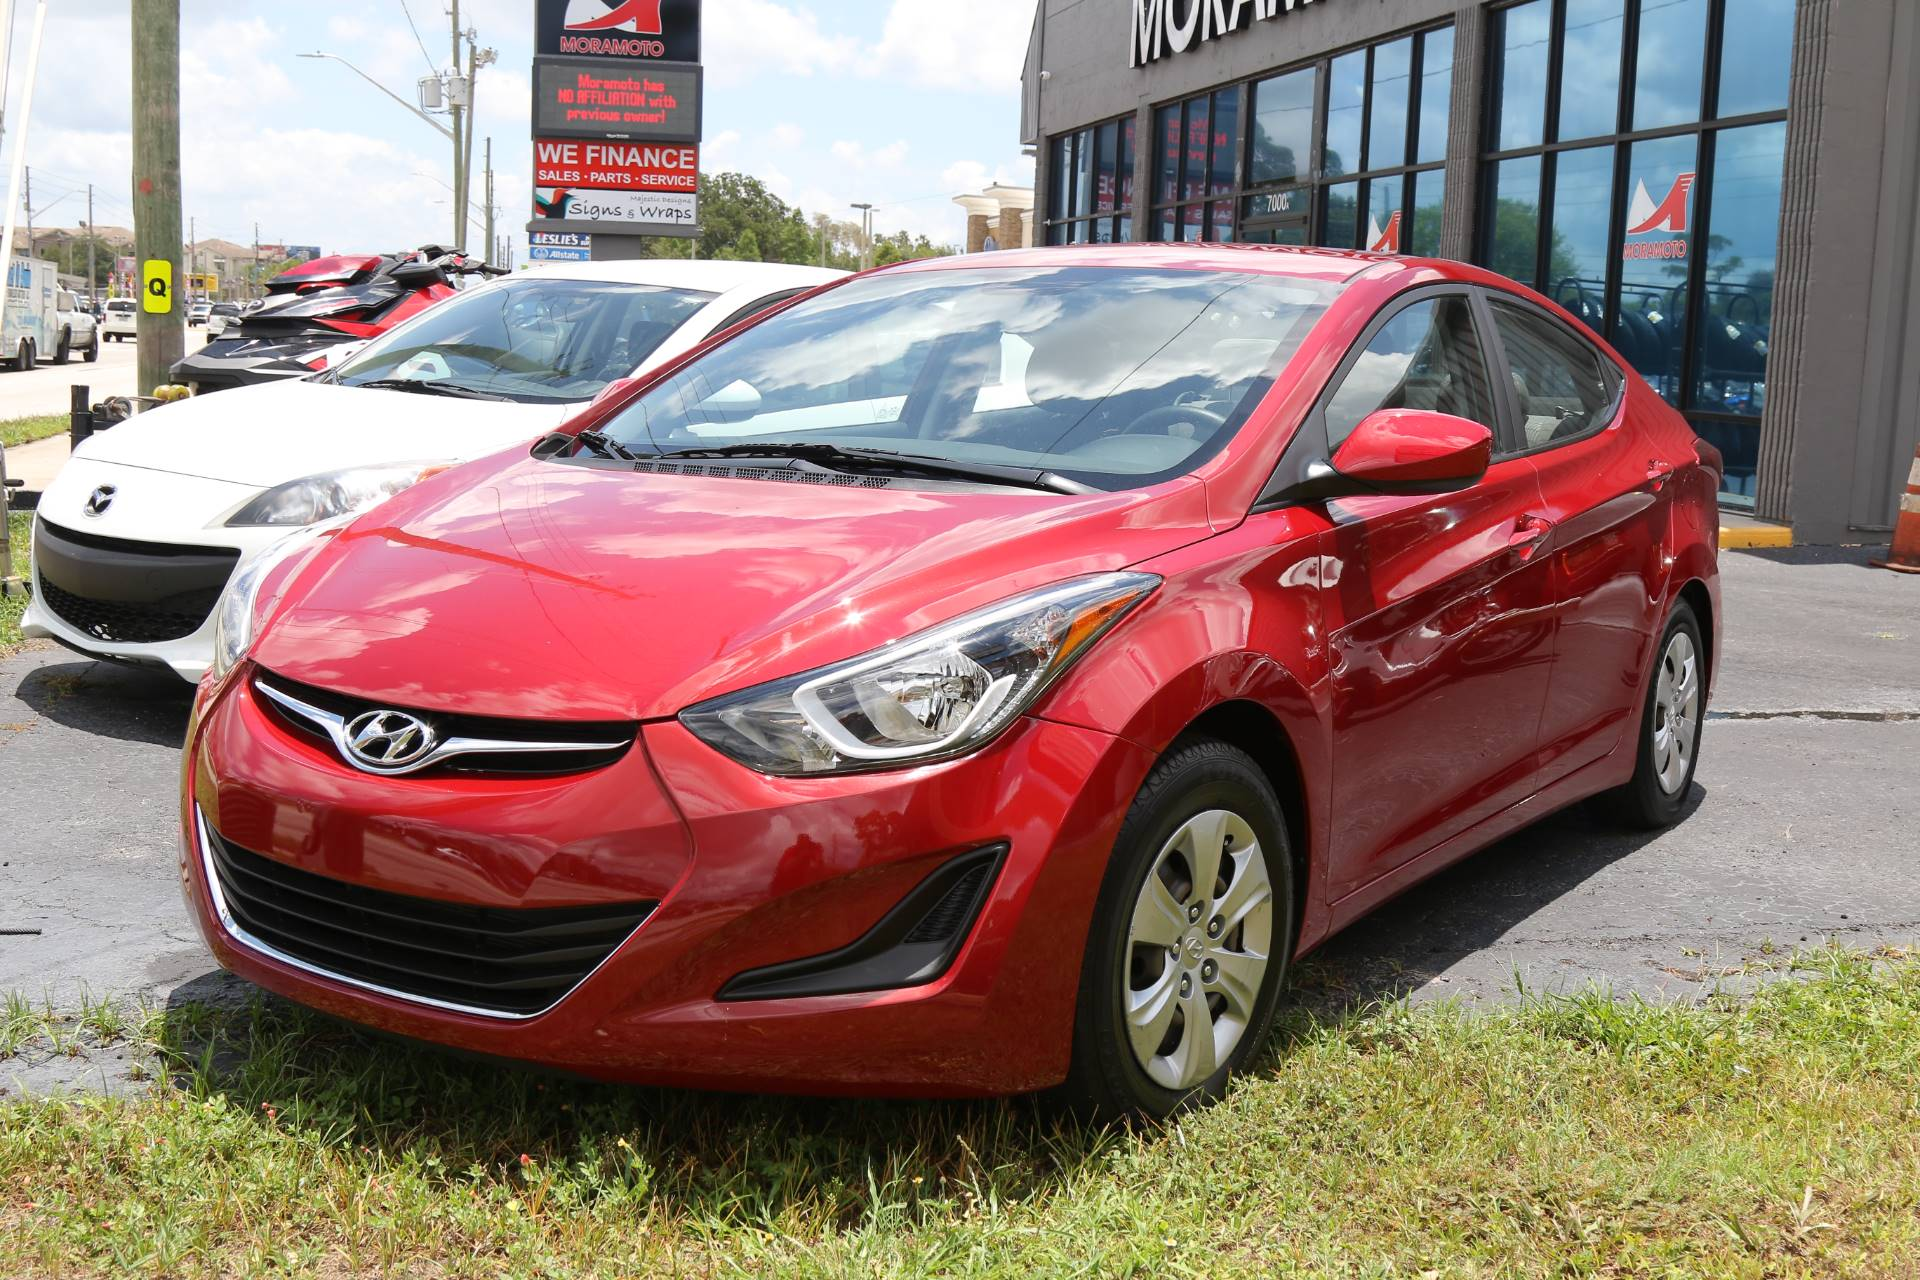 2016 Hyundai Elantra in Pinellas Park, Florida